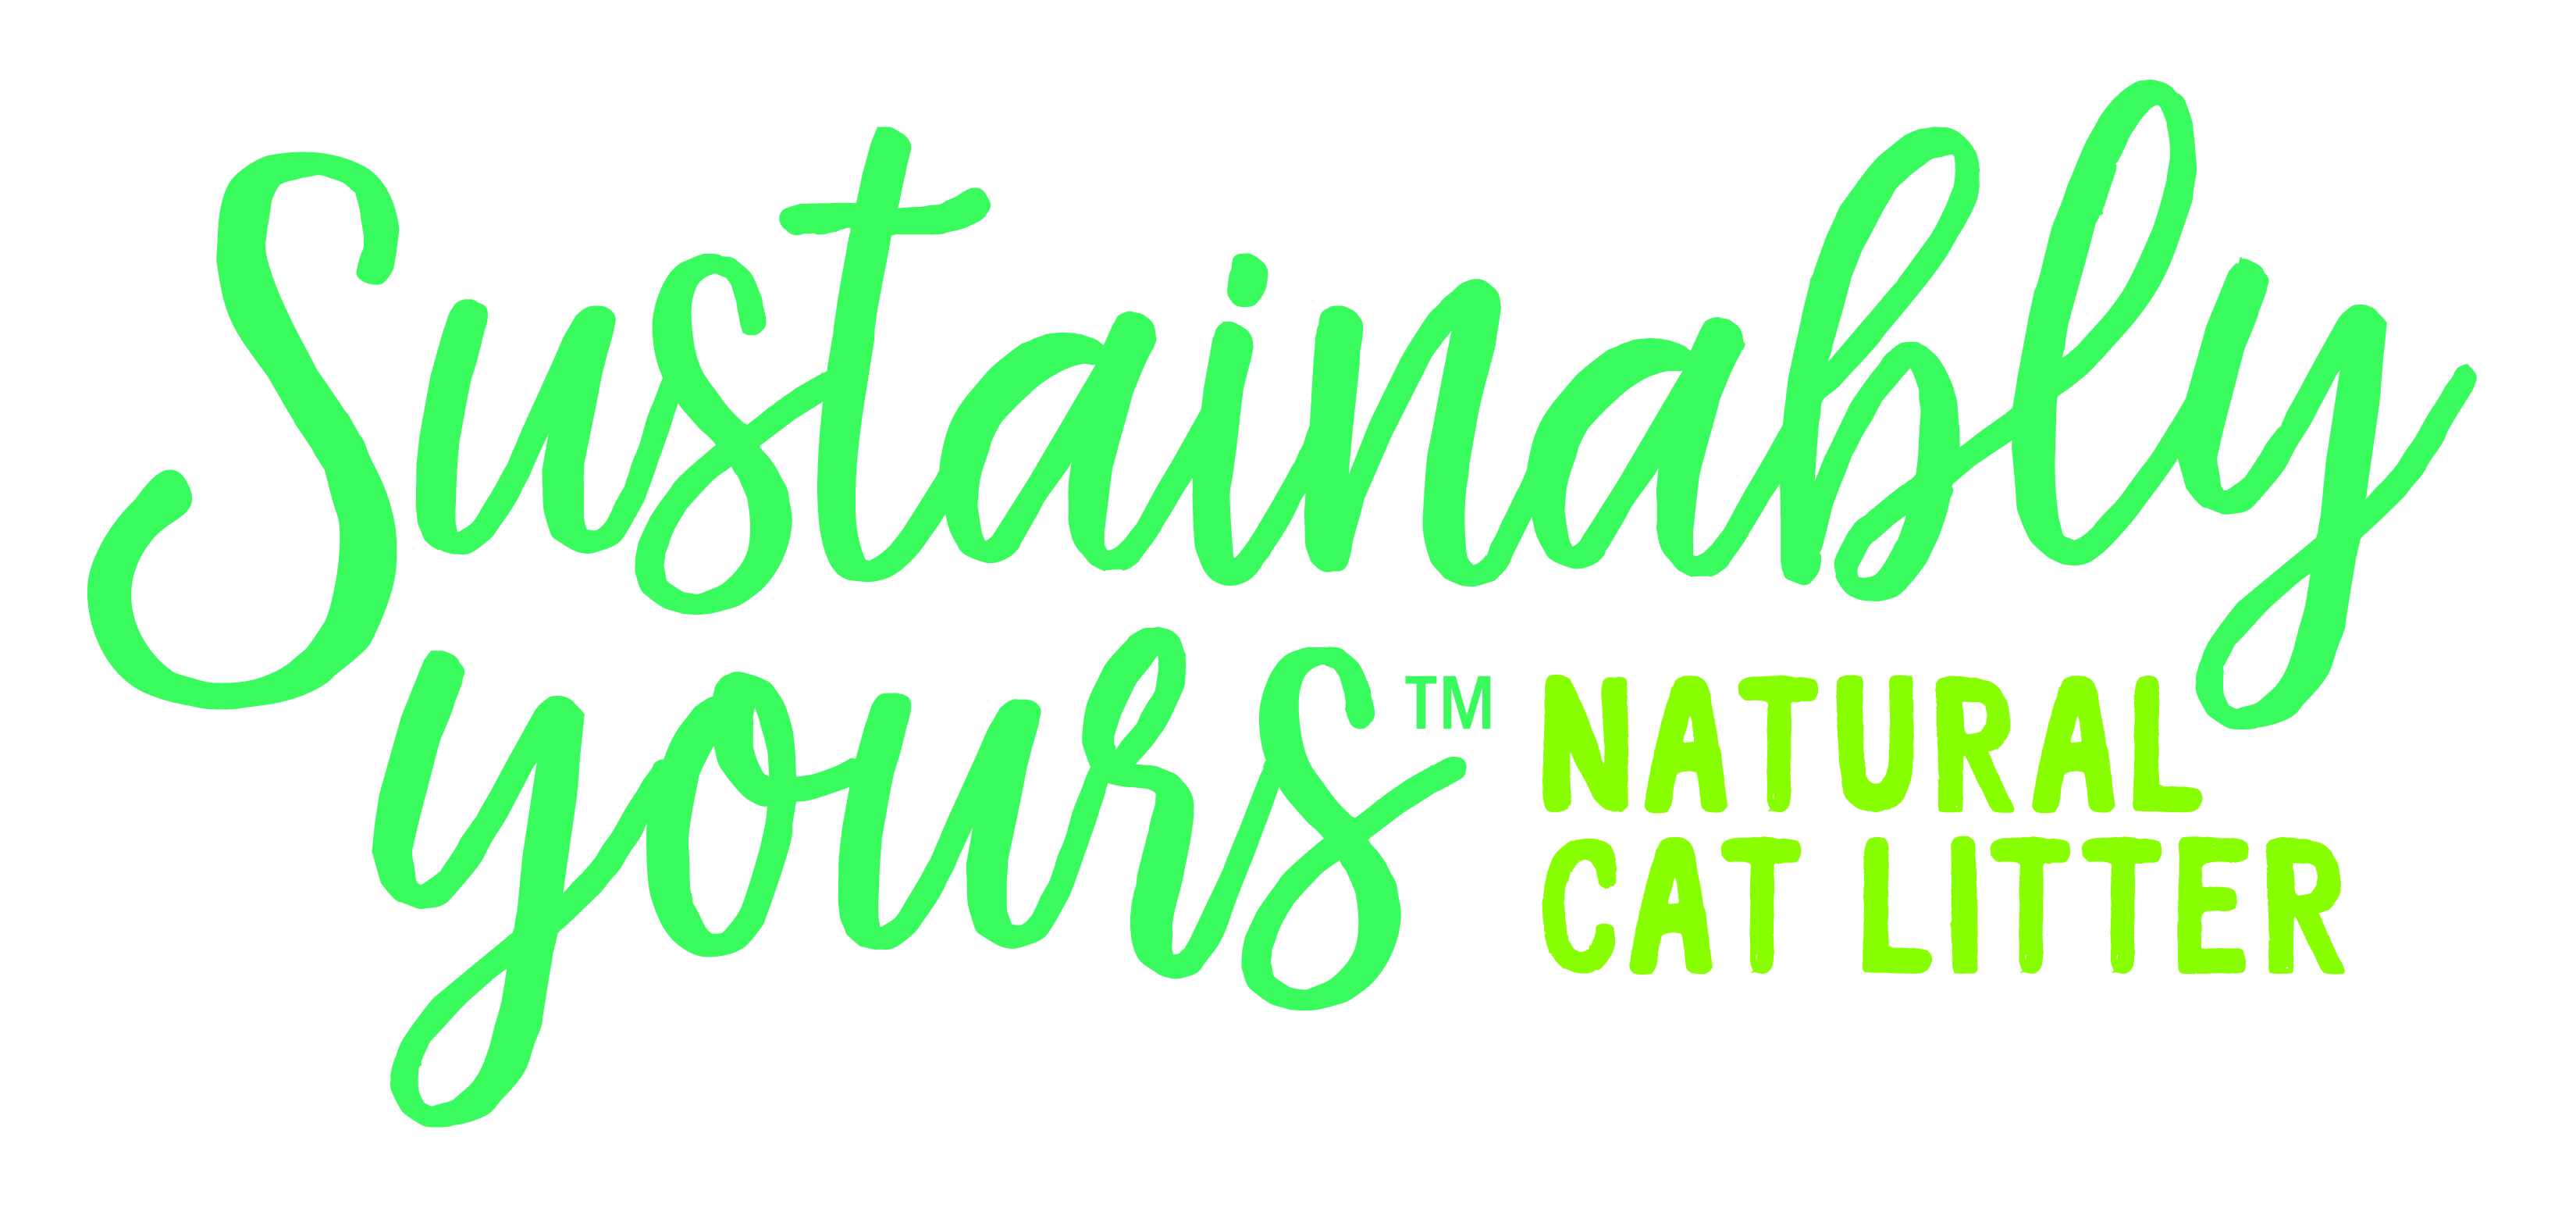 Sustainably Yours Launches New Website